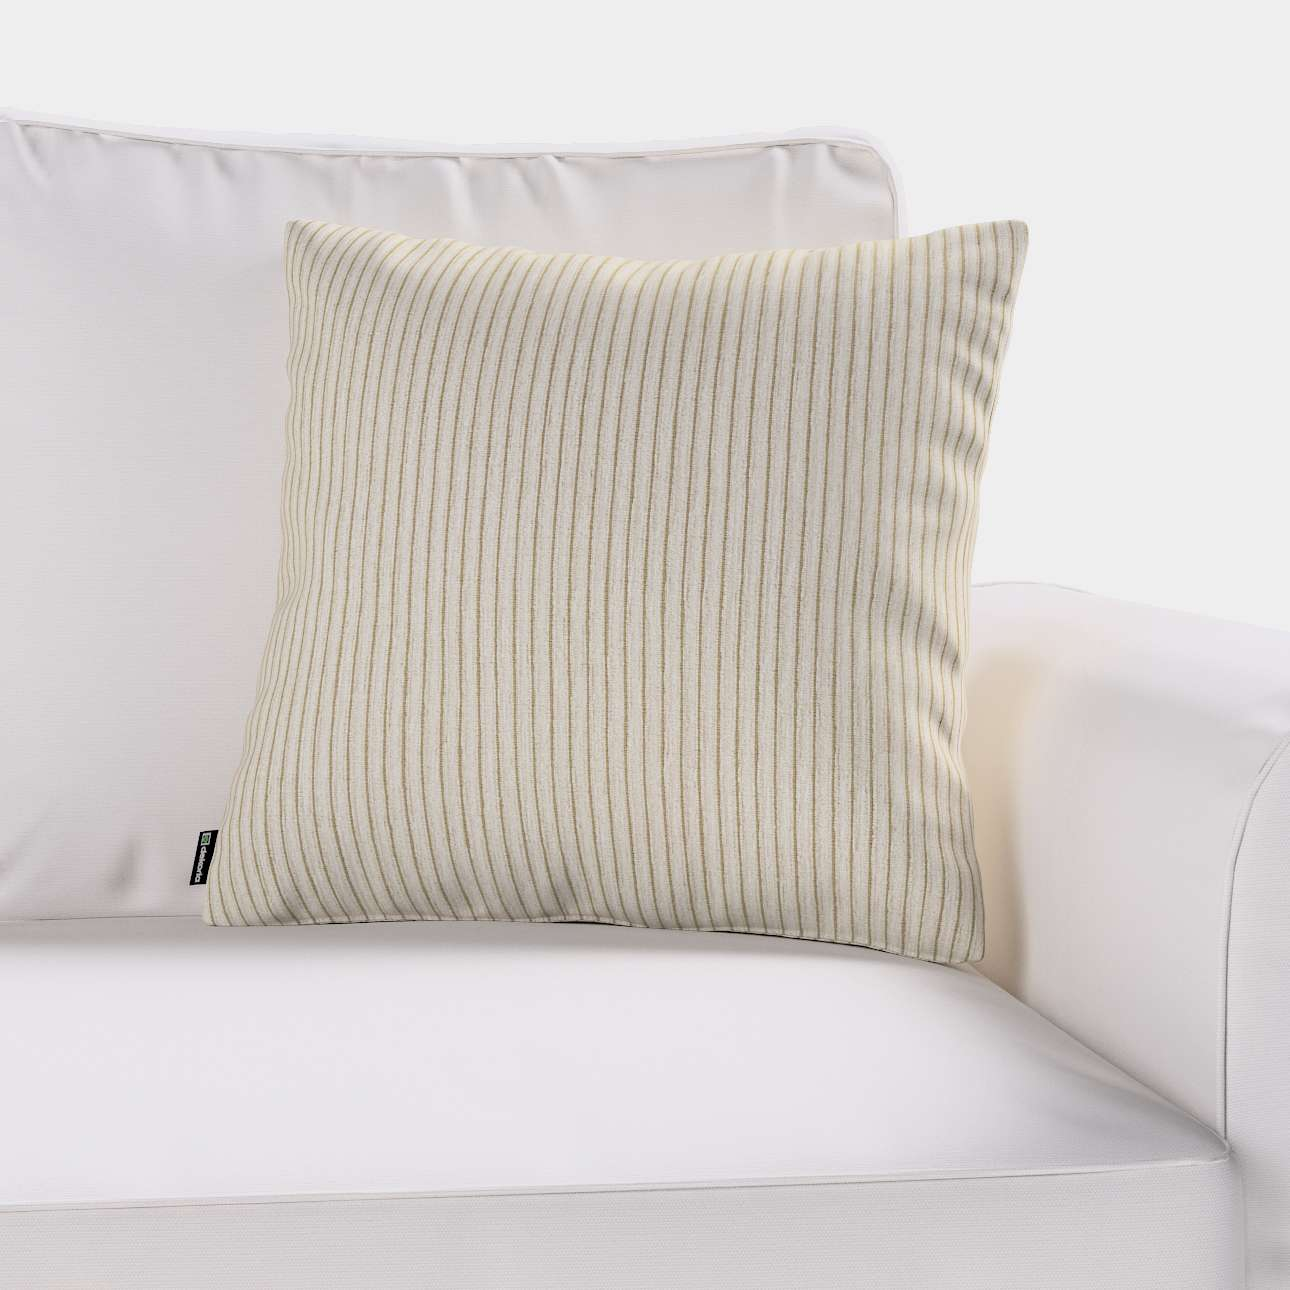 Kinga cushion cover in collection Living, fabric: 105-90